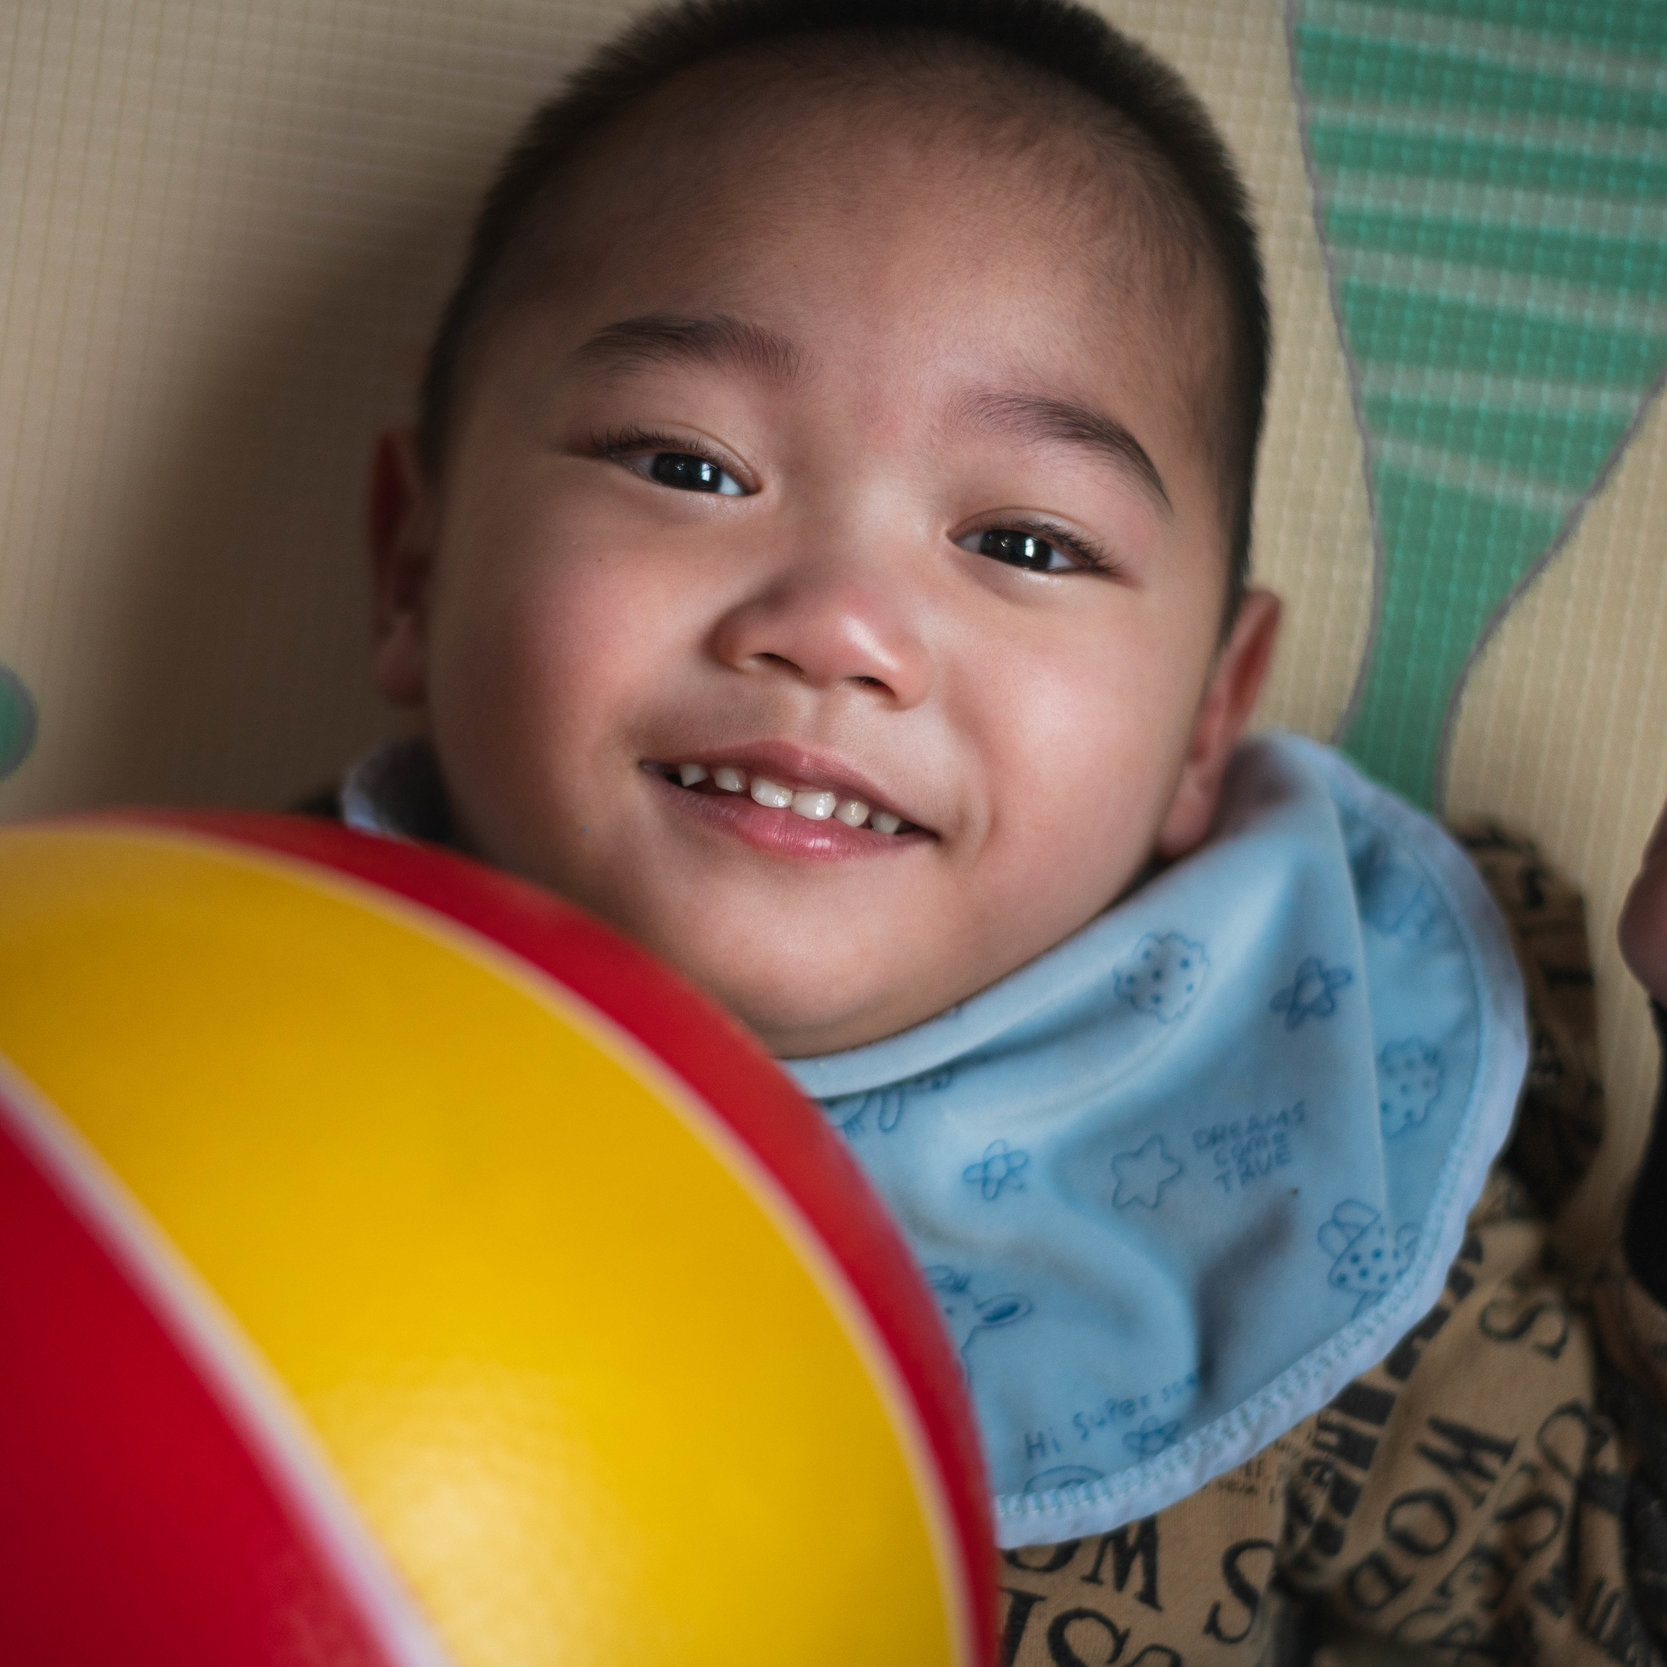 GONG ZJ   Medical Condition: Celebral Palsy, Hernia